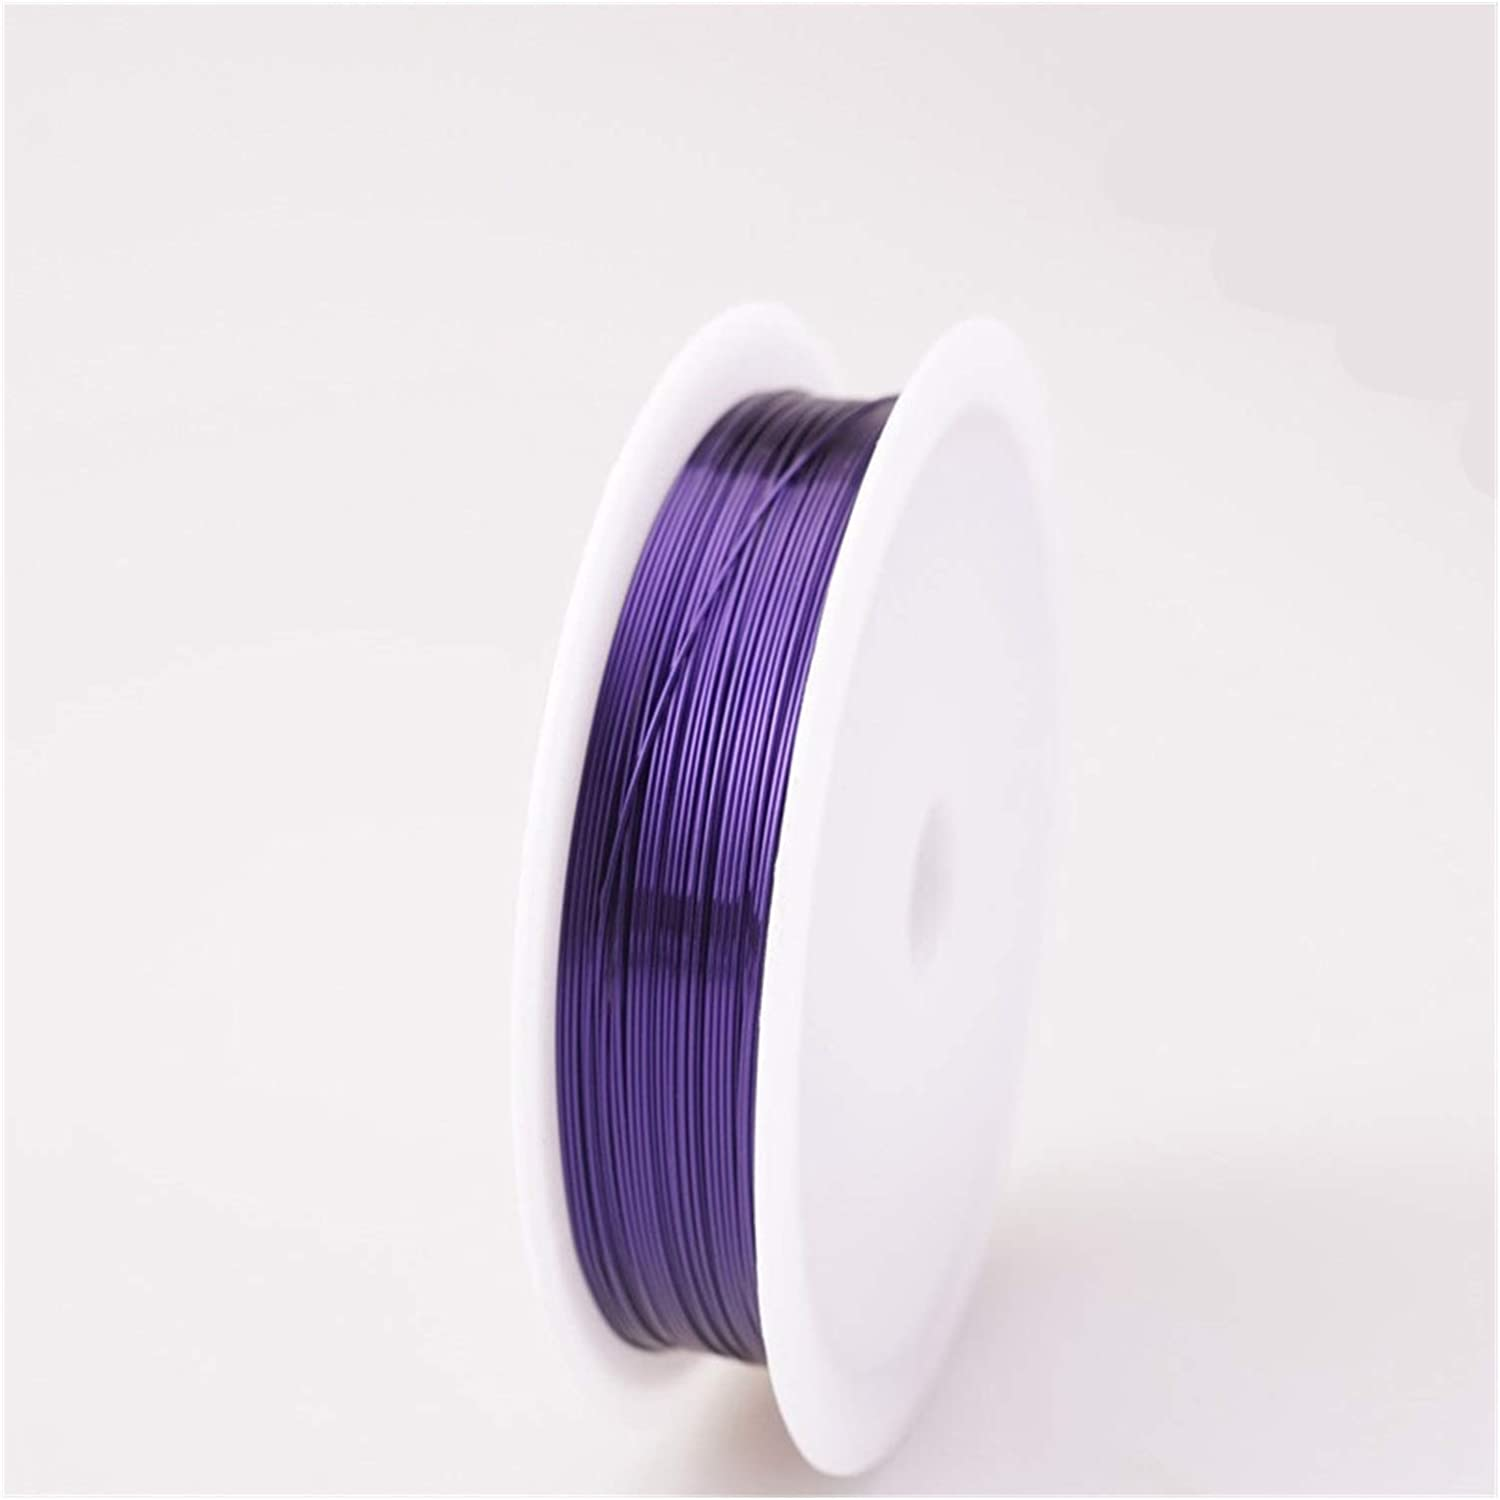 Max 77% OFF JPMSB Jewelry Wire Manufacturer direct delivery Colorfast Copper Necklace for Bracelet J